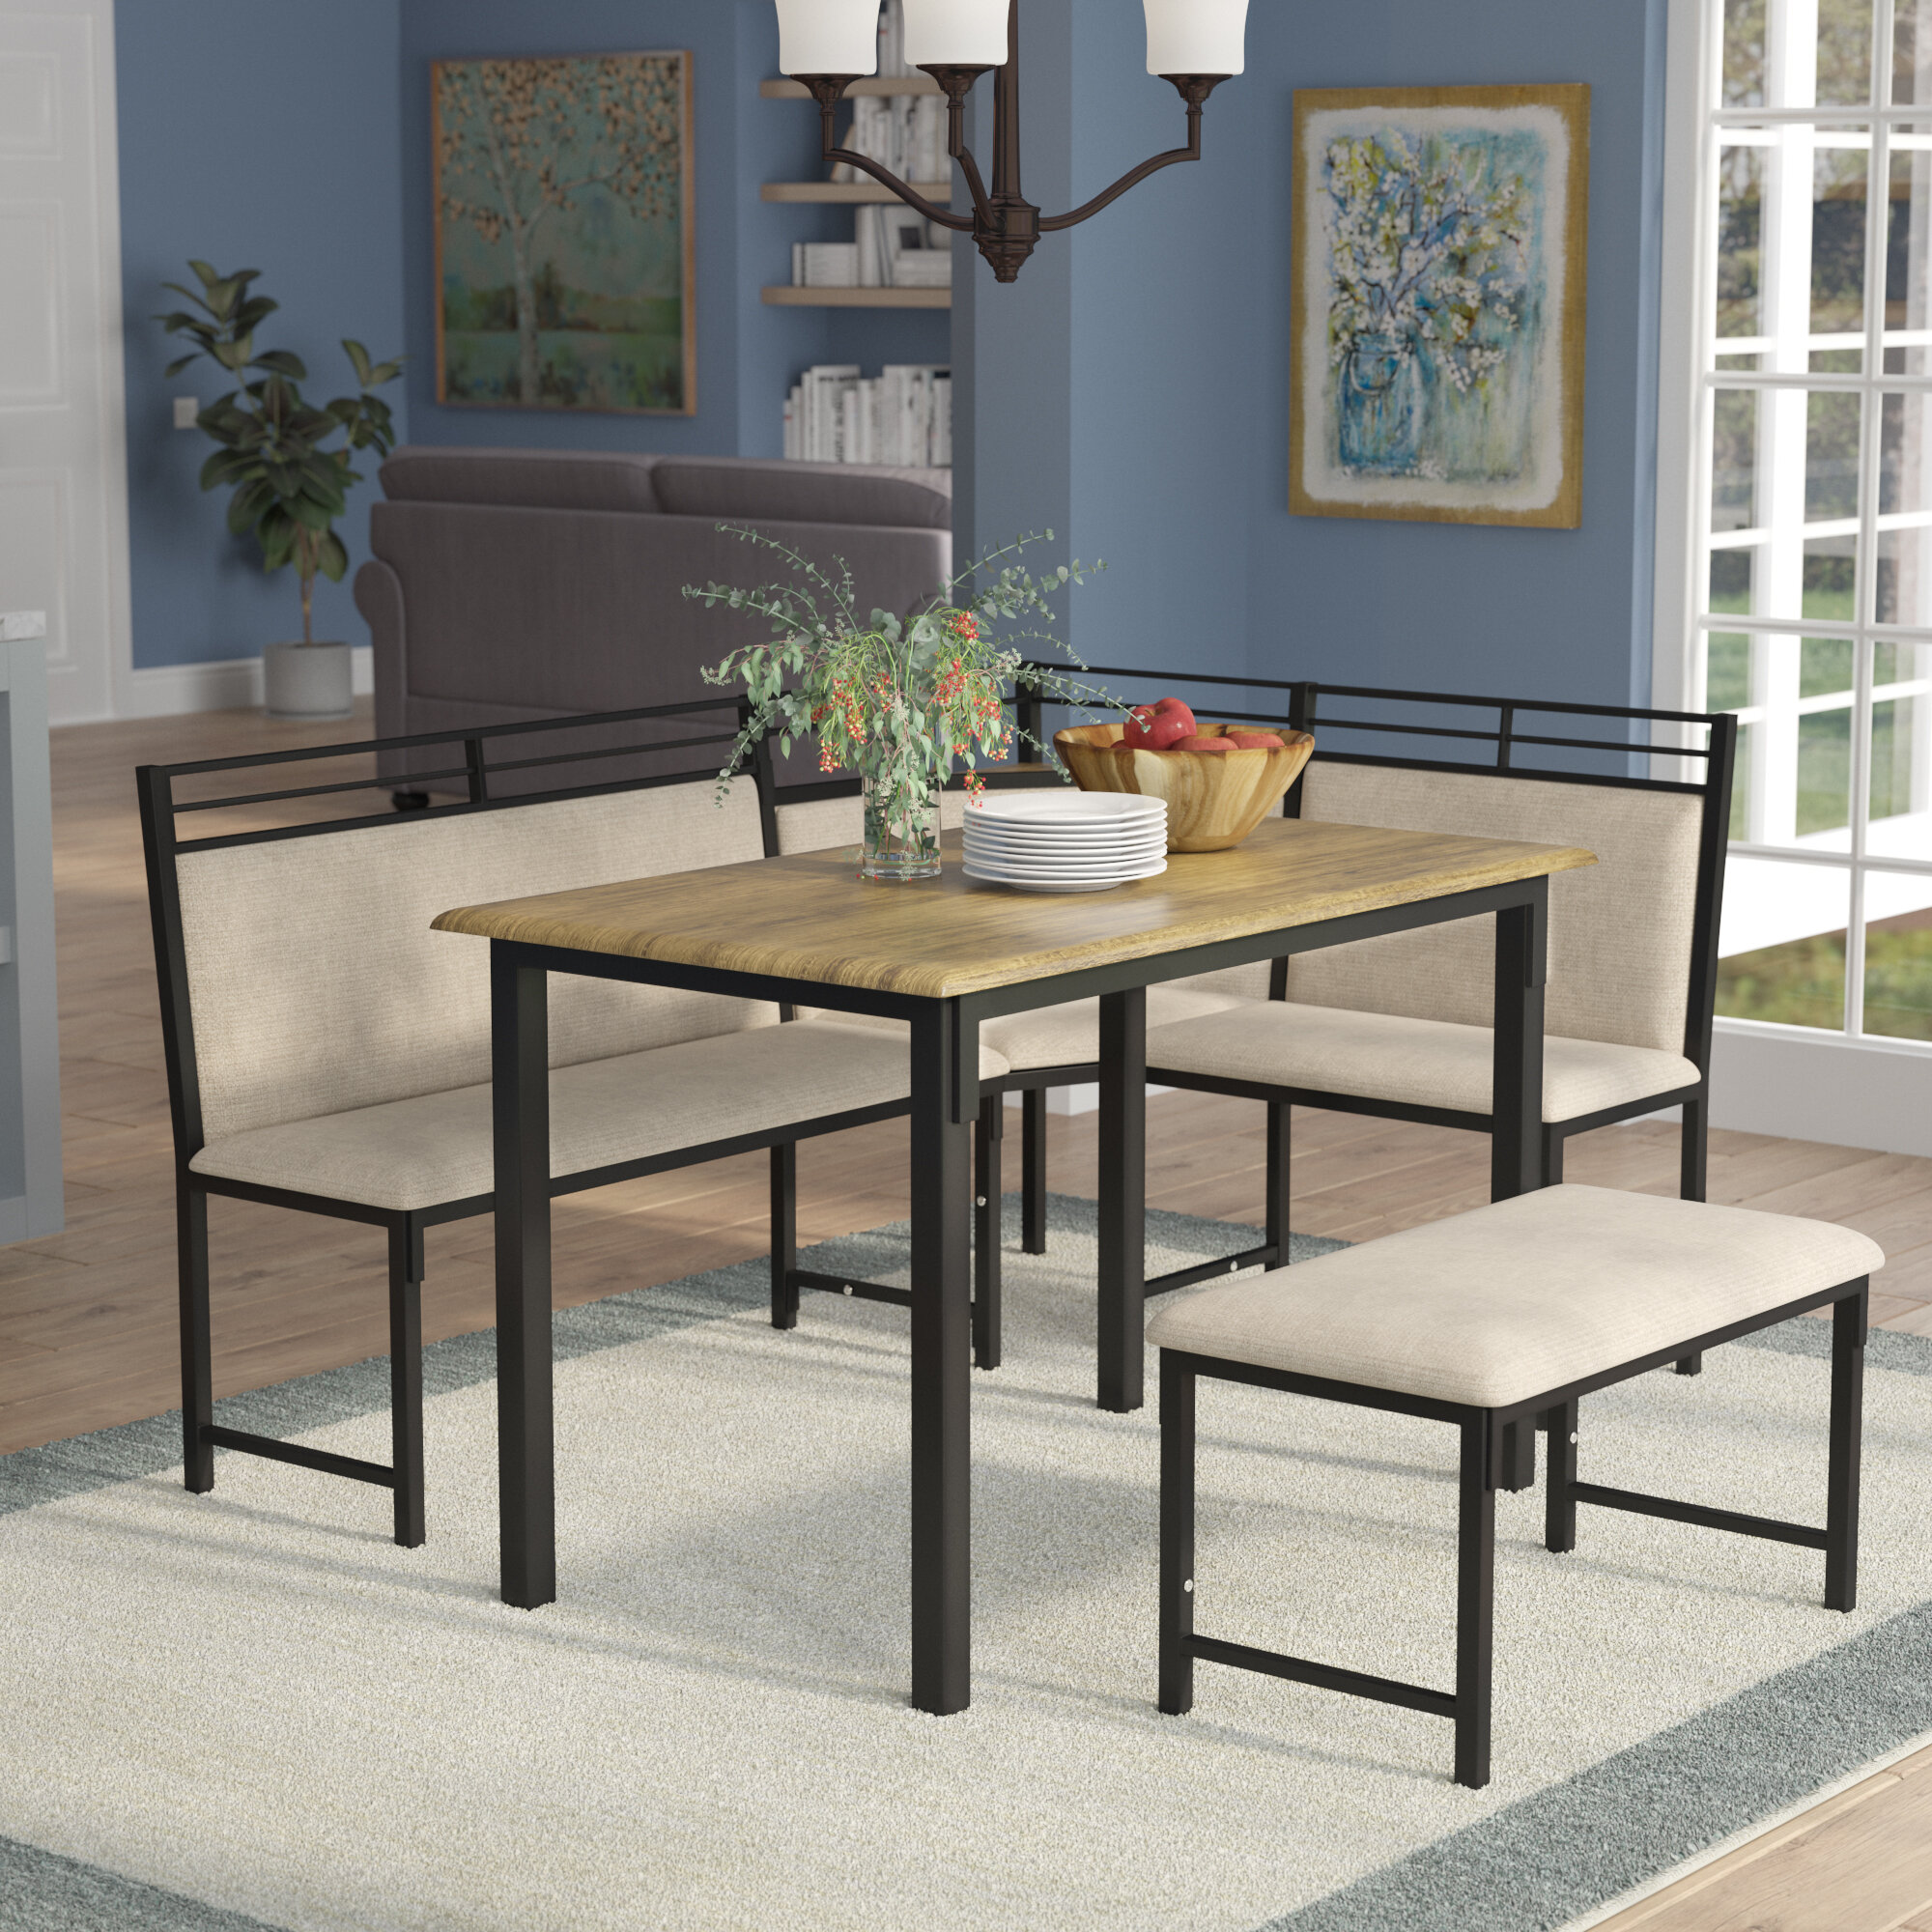 Corner Banquette Dining Set | Wayfair